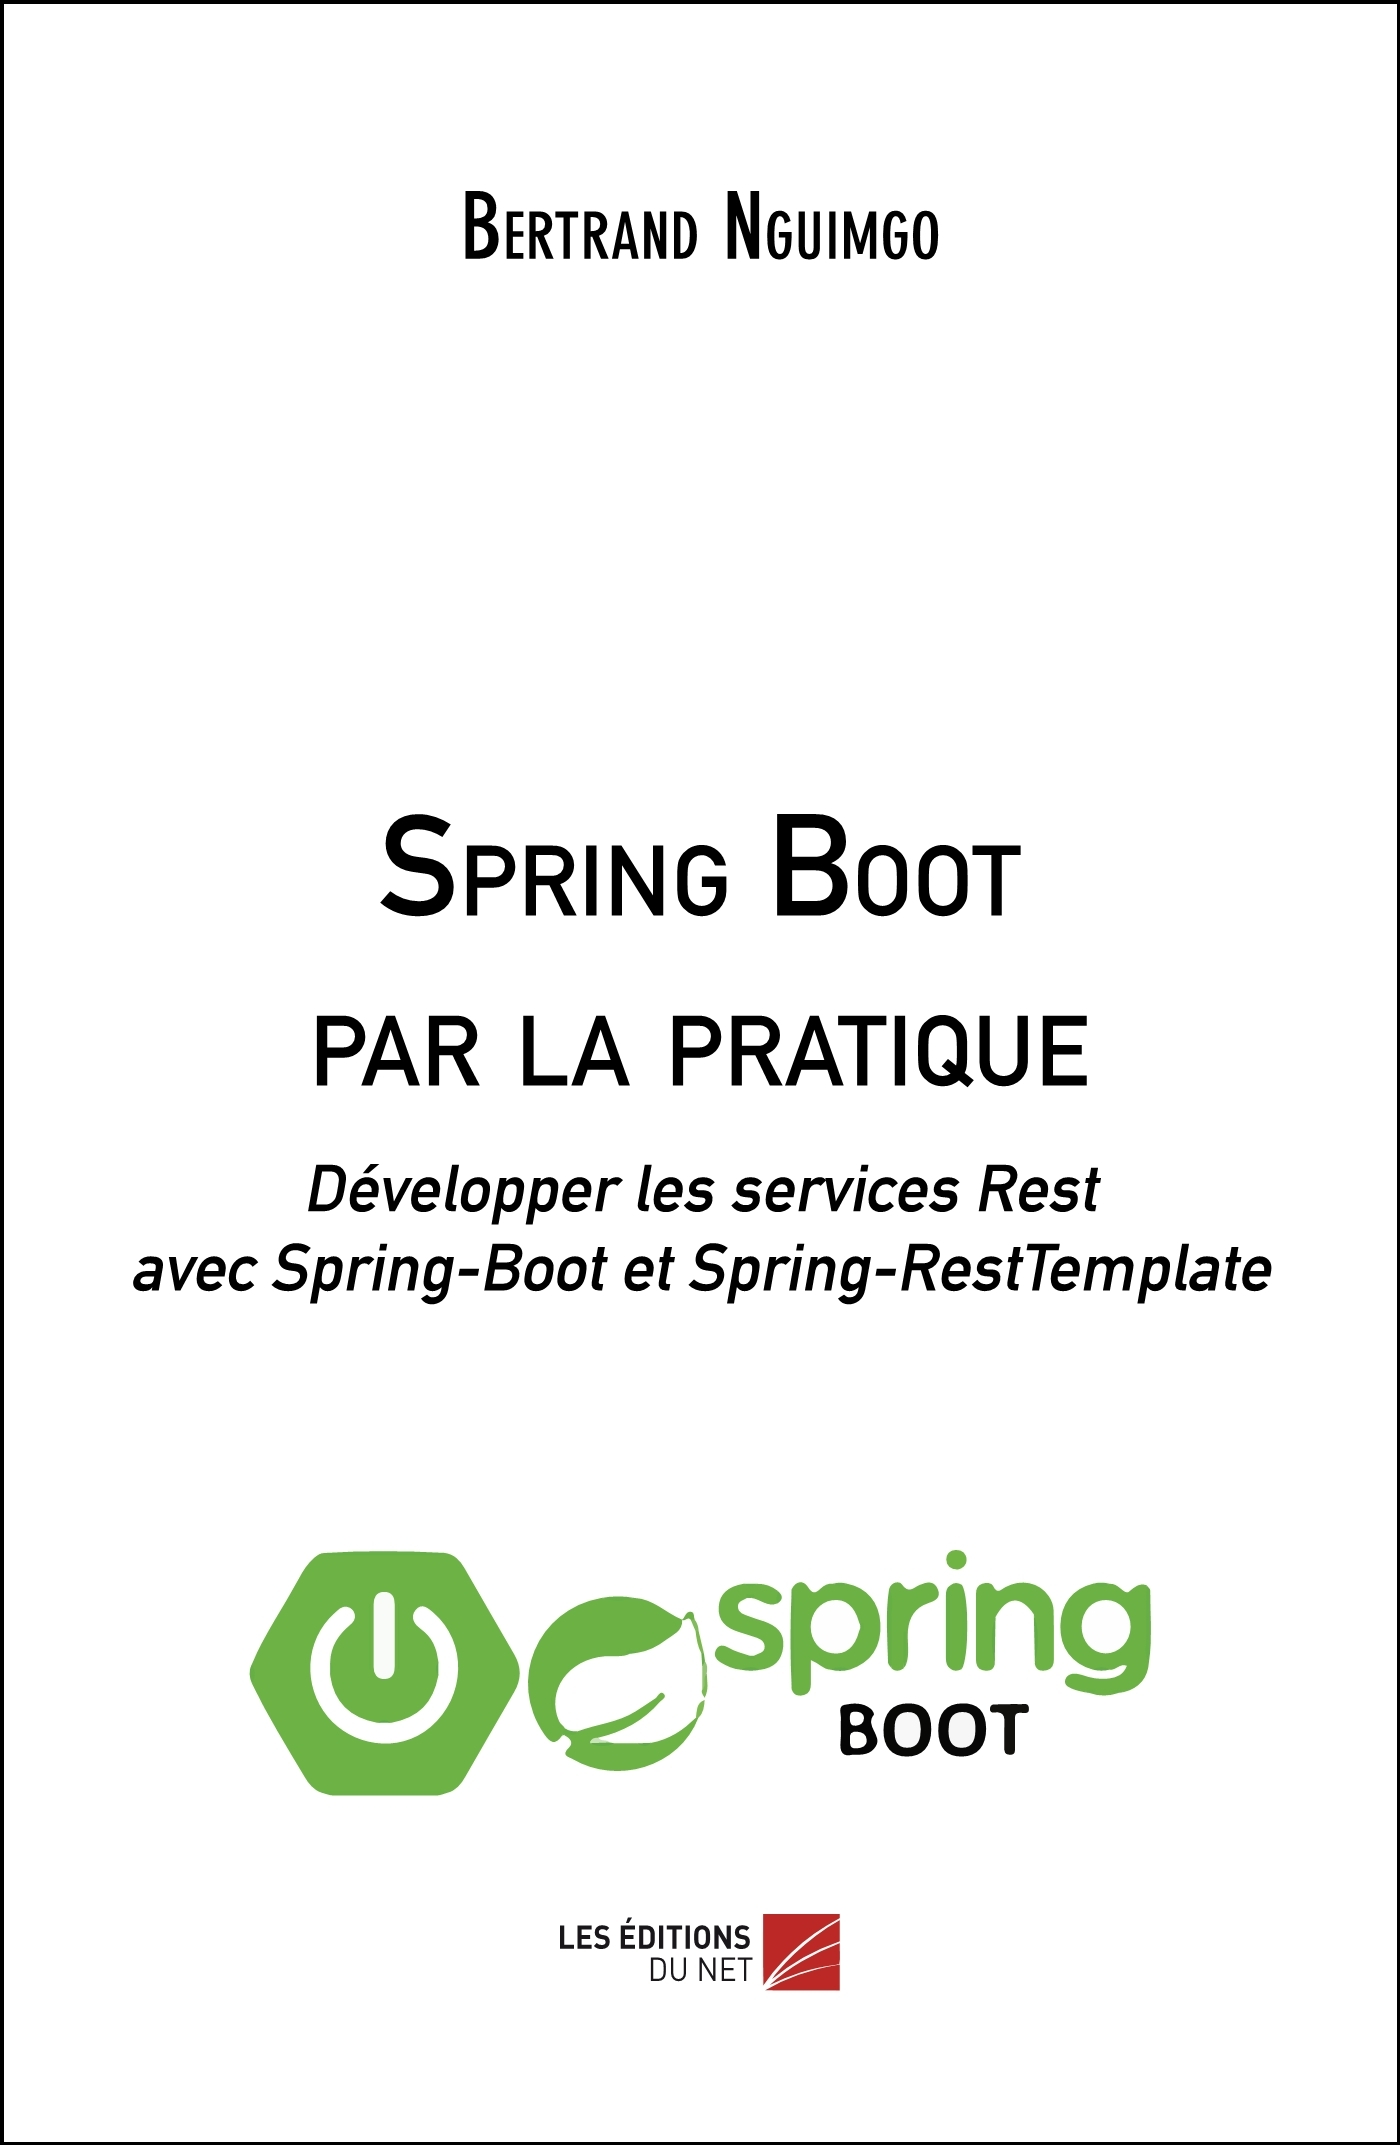 SPRING BOOT PAR LA PRATIQUE - DEVELOPPER LES SERVICES REST AVEC SPRING-BOOT ET SPRING-RESTTEMPLATE